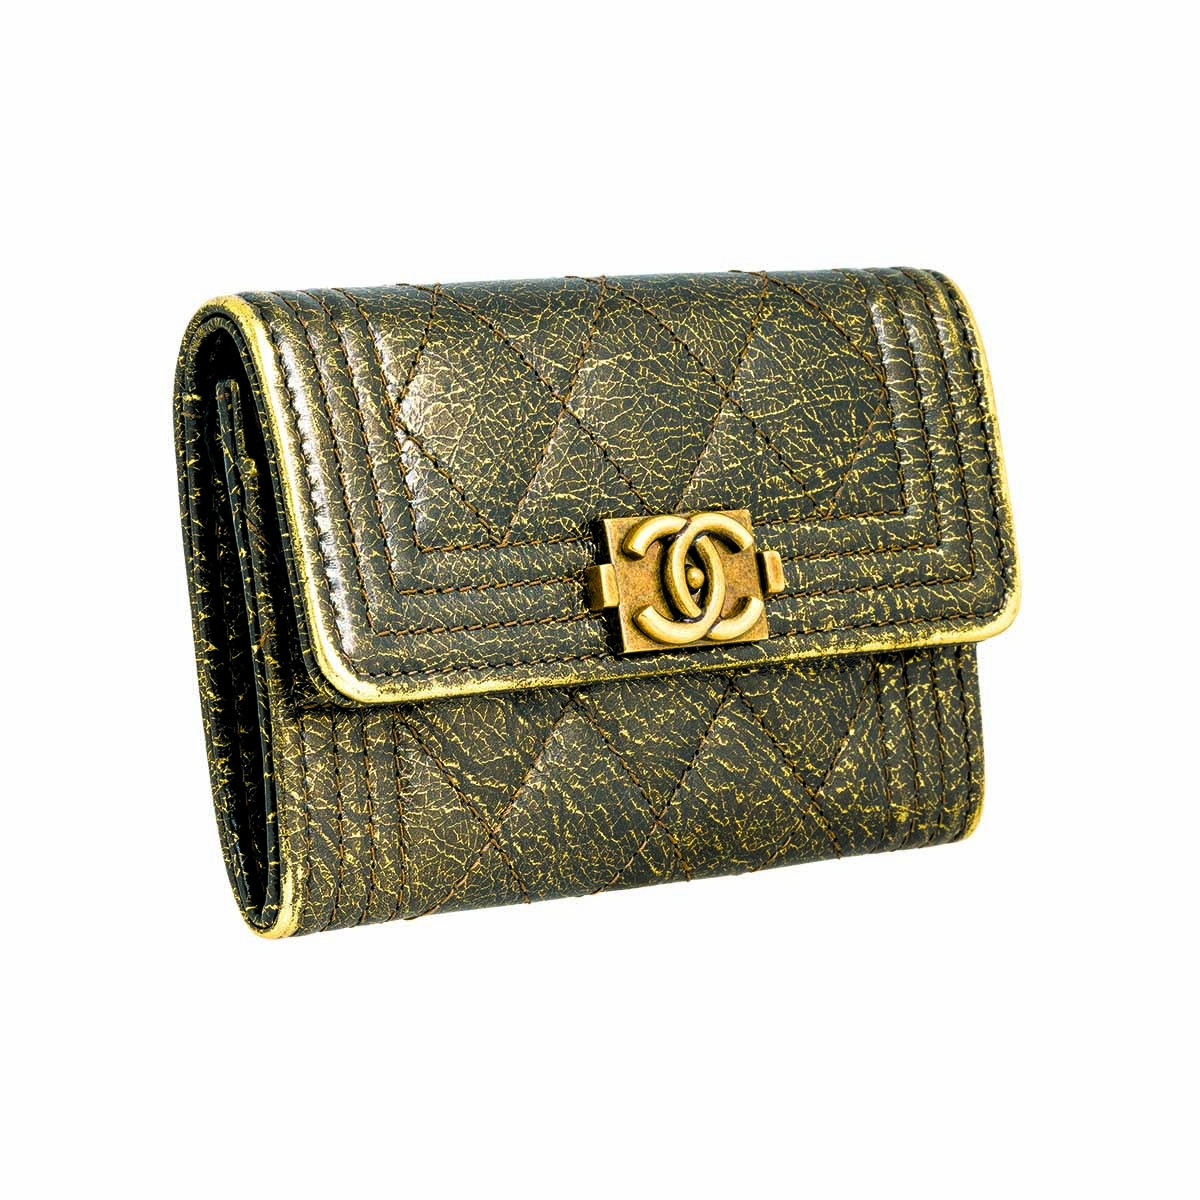 Vintage Chanel Boy Card Holder